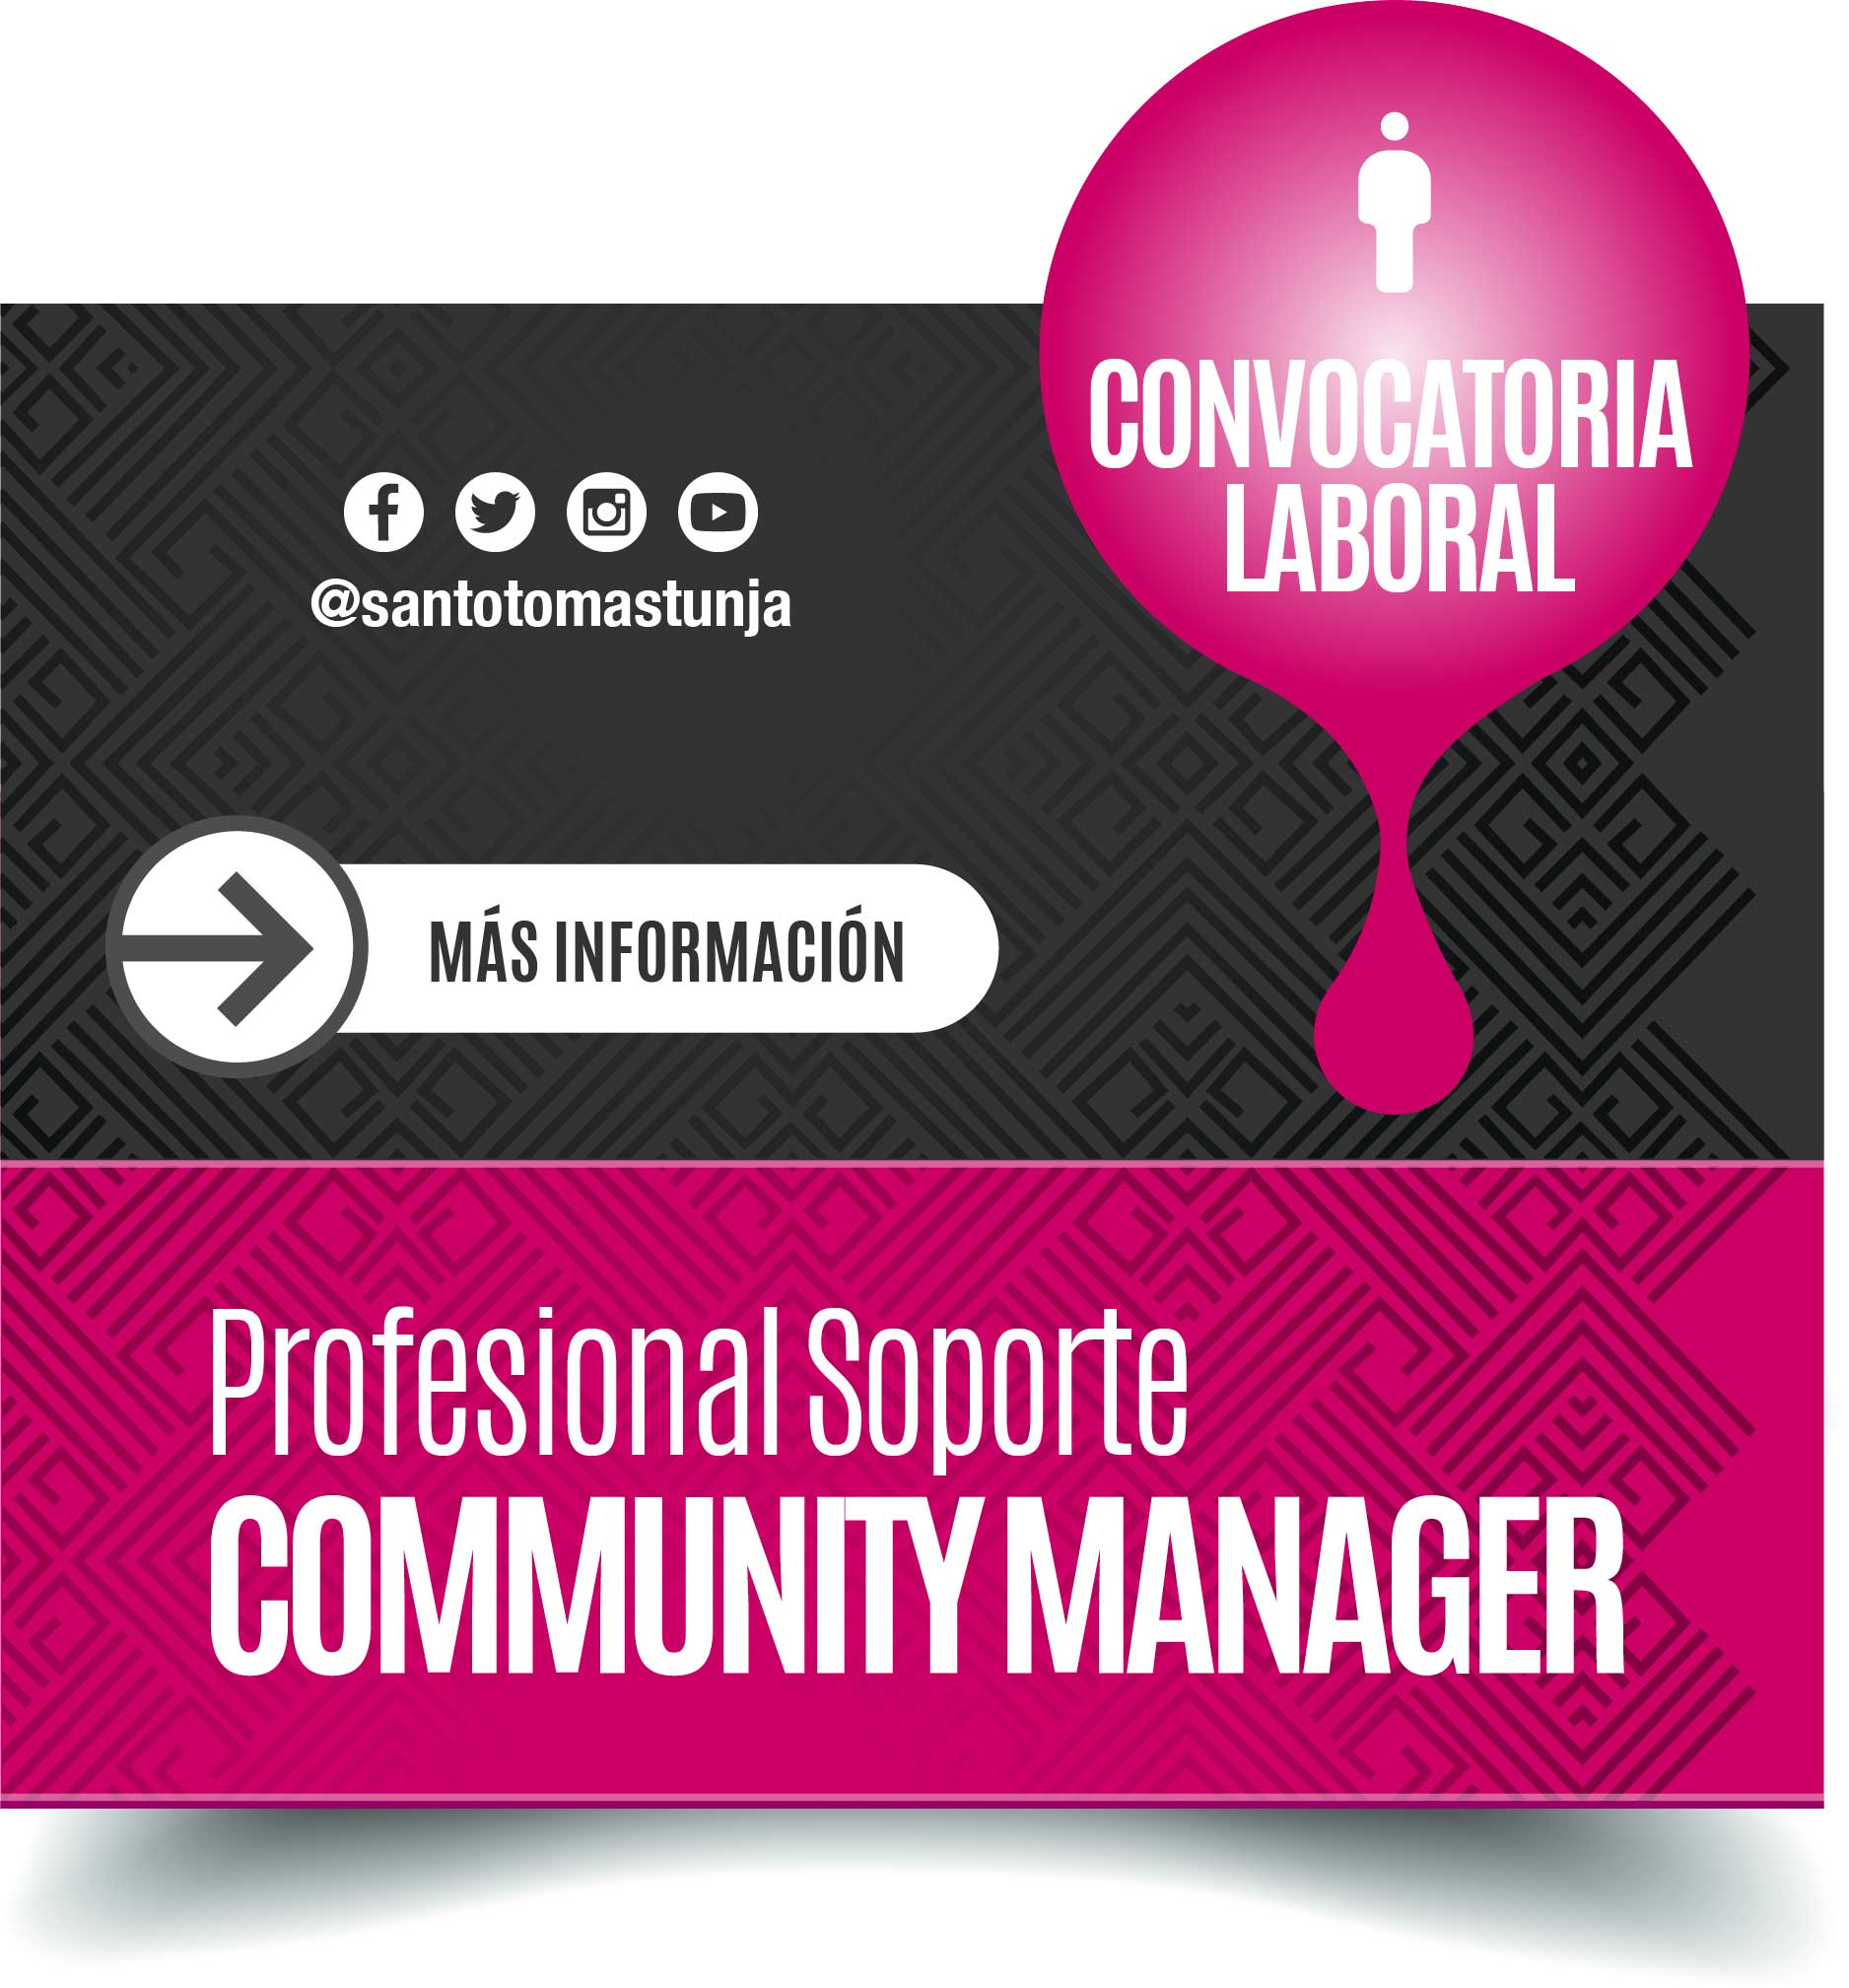 Convocatorias COMMUNITY MANAGER 02